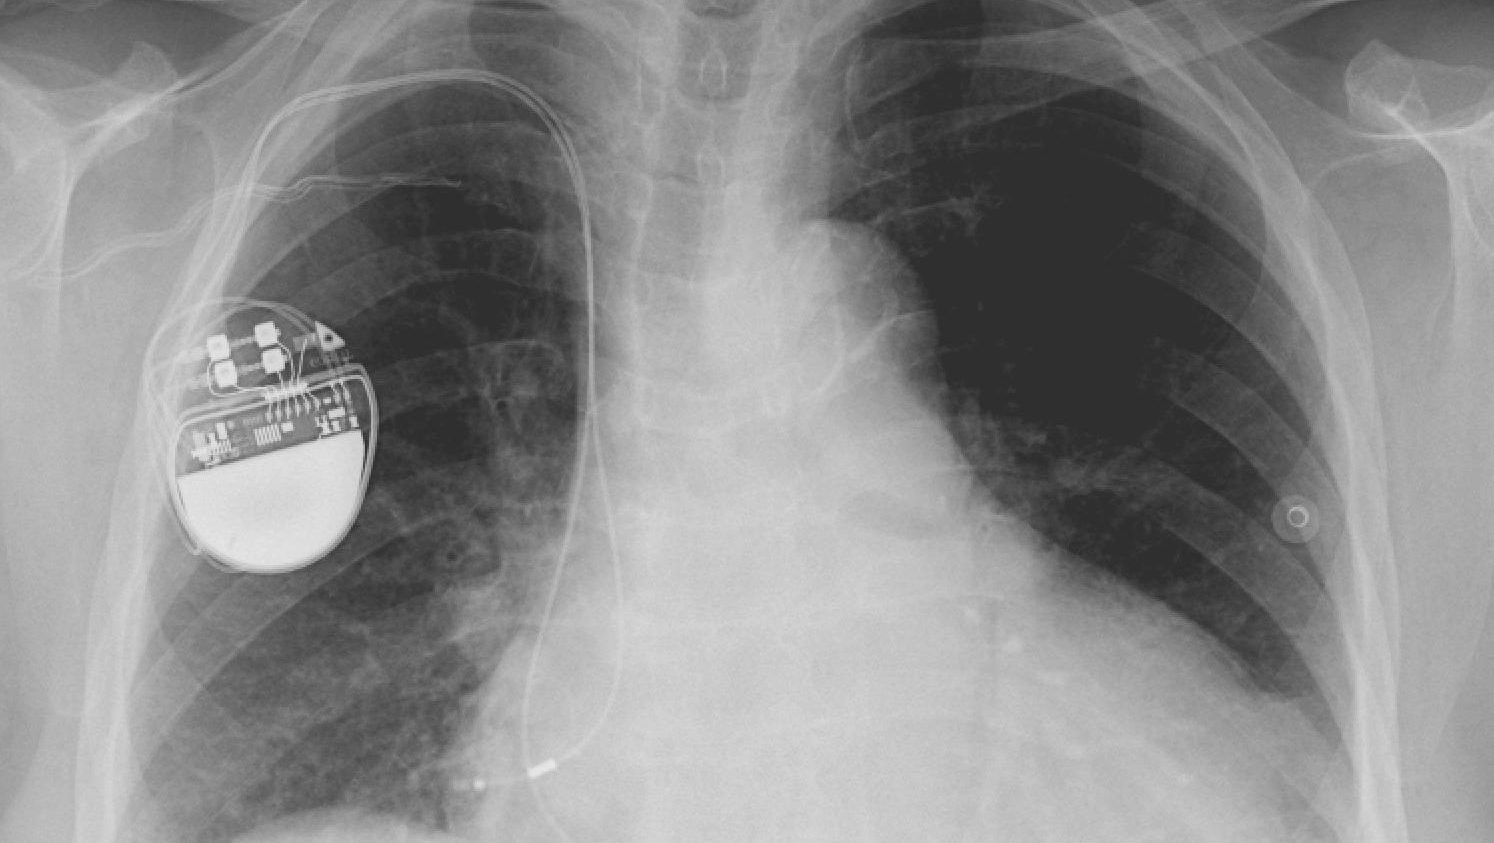 An x-ray image showing a pacemaker implanted in a person's chest.